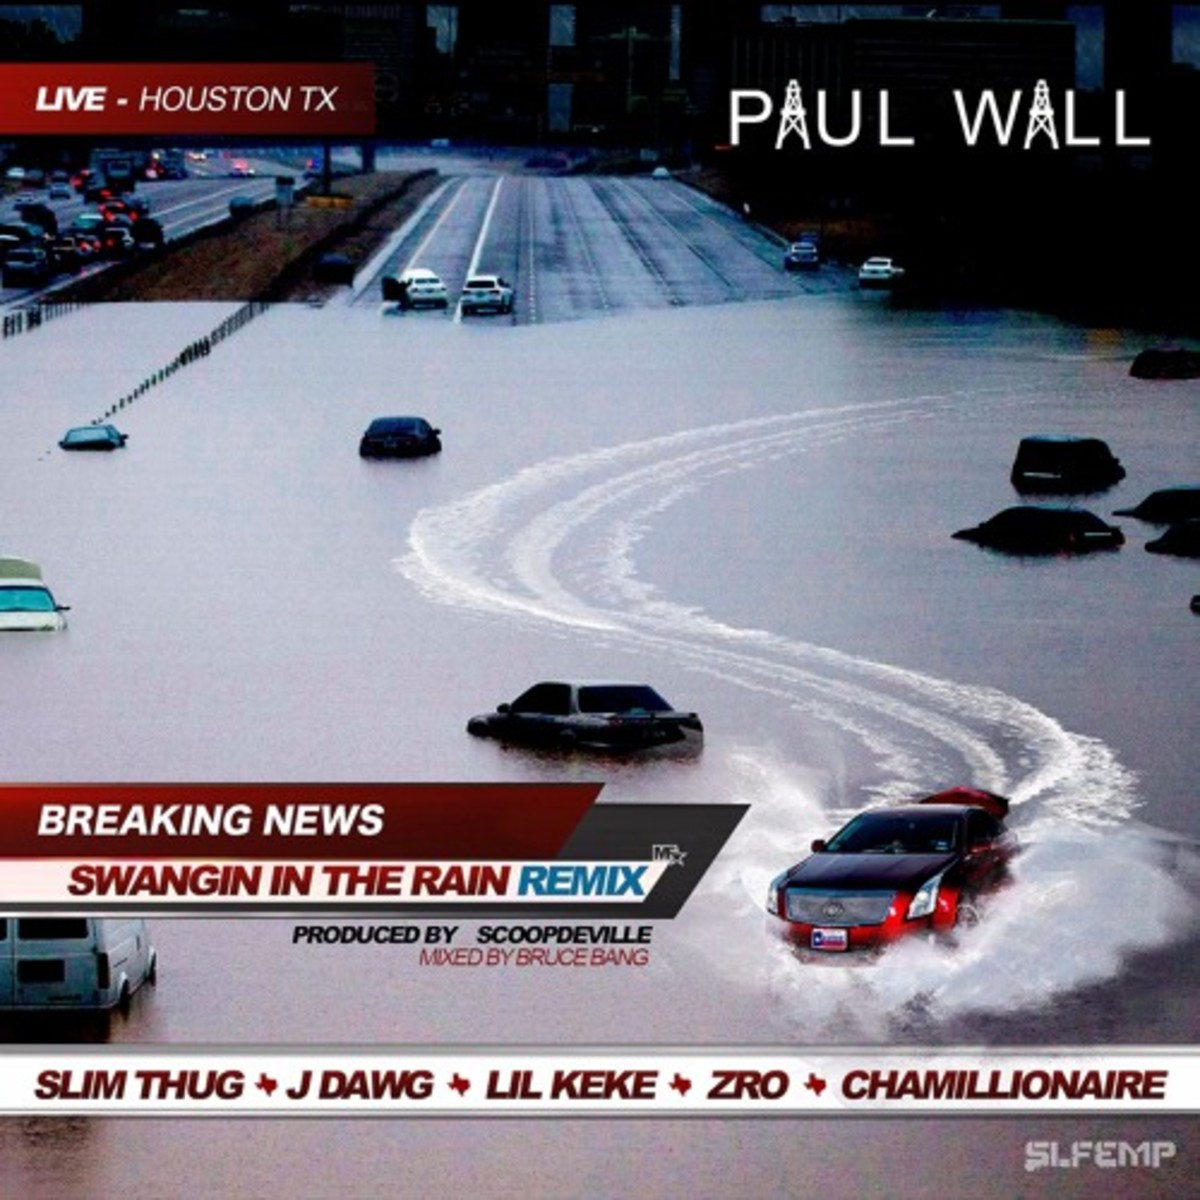 paul-wall-swangin-in-the-rain-remix.jpg